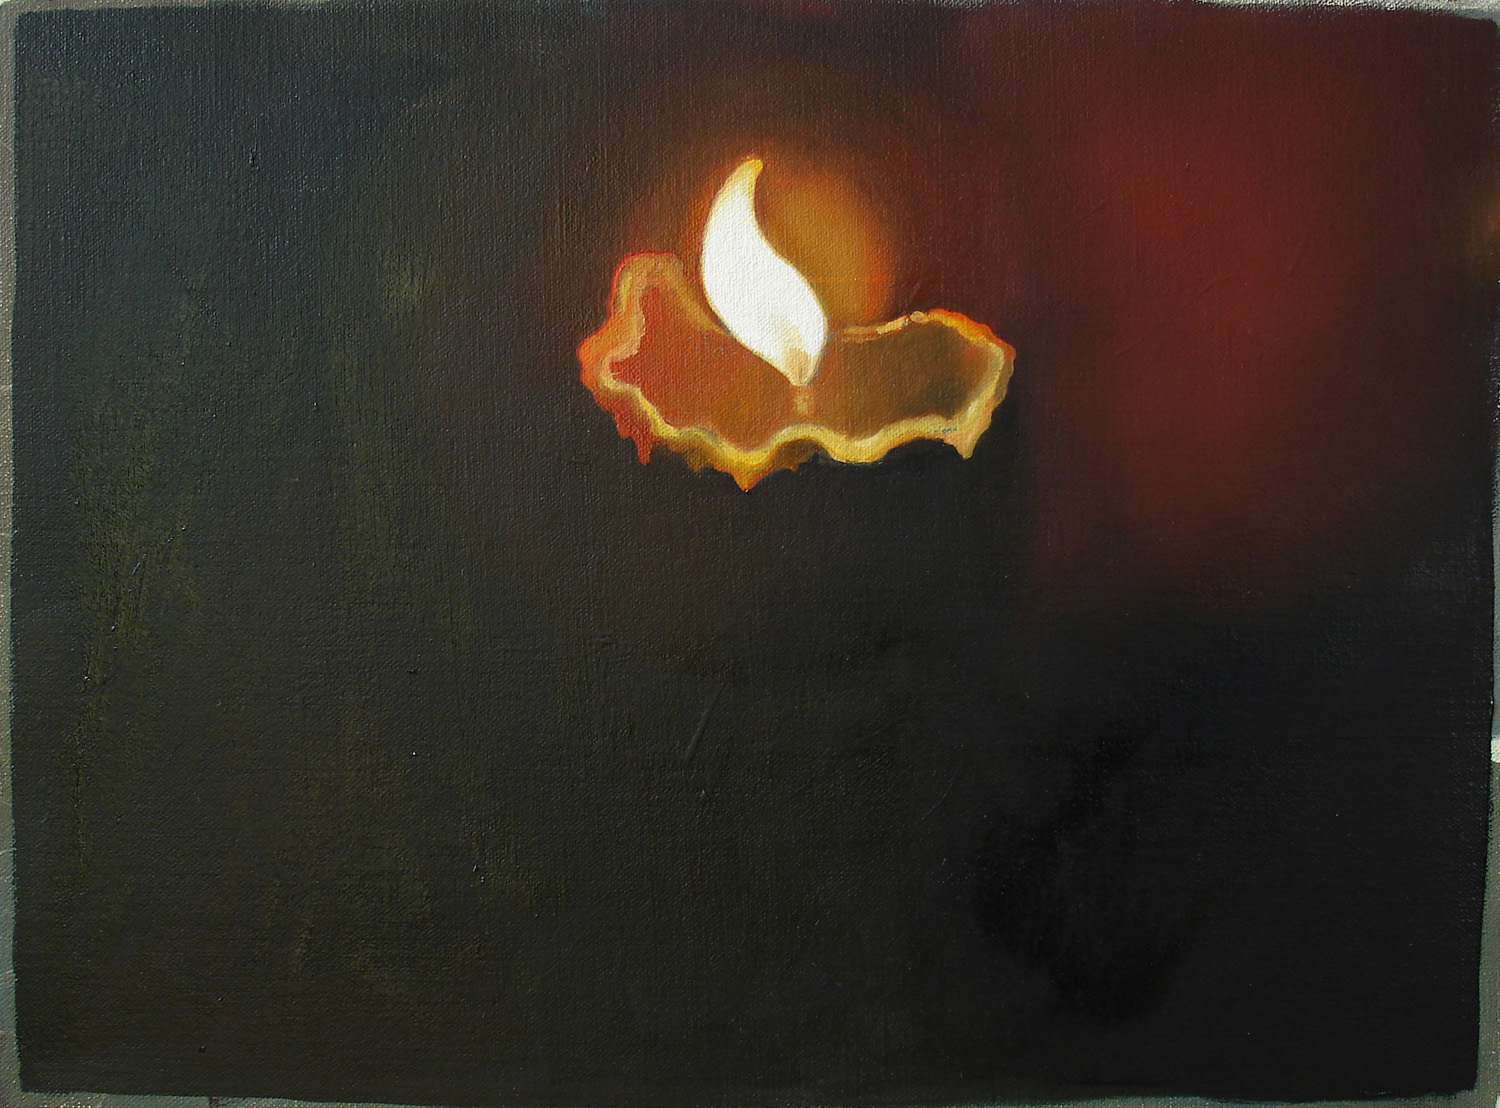 Candle    2007, oil on canvas, 24 x32cm